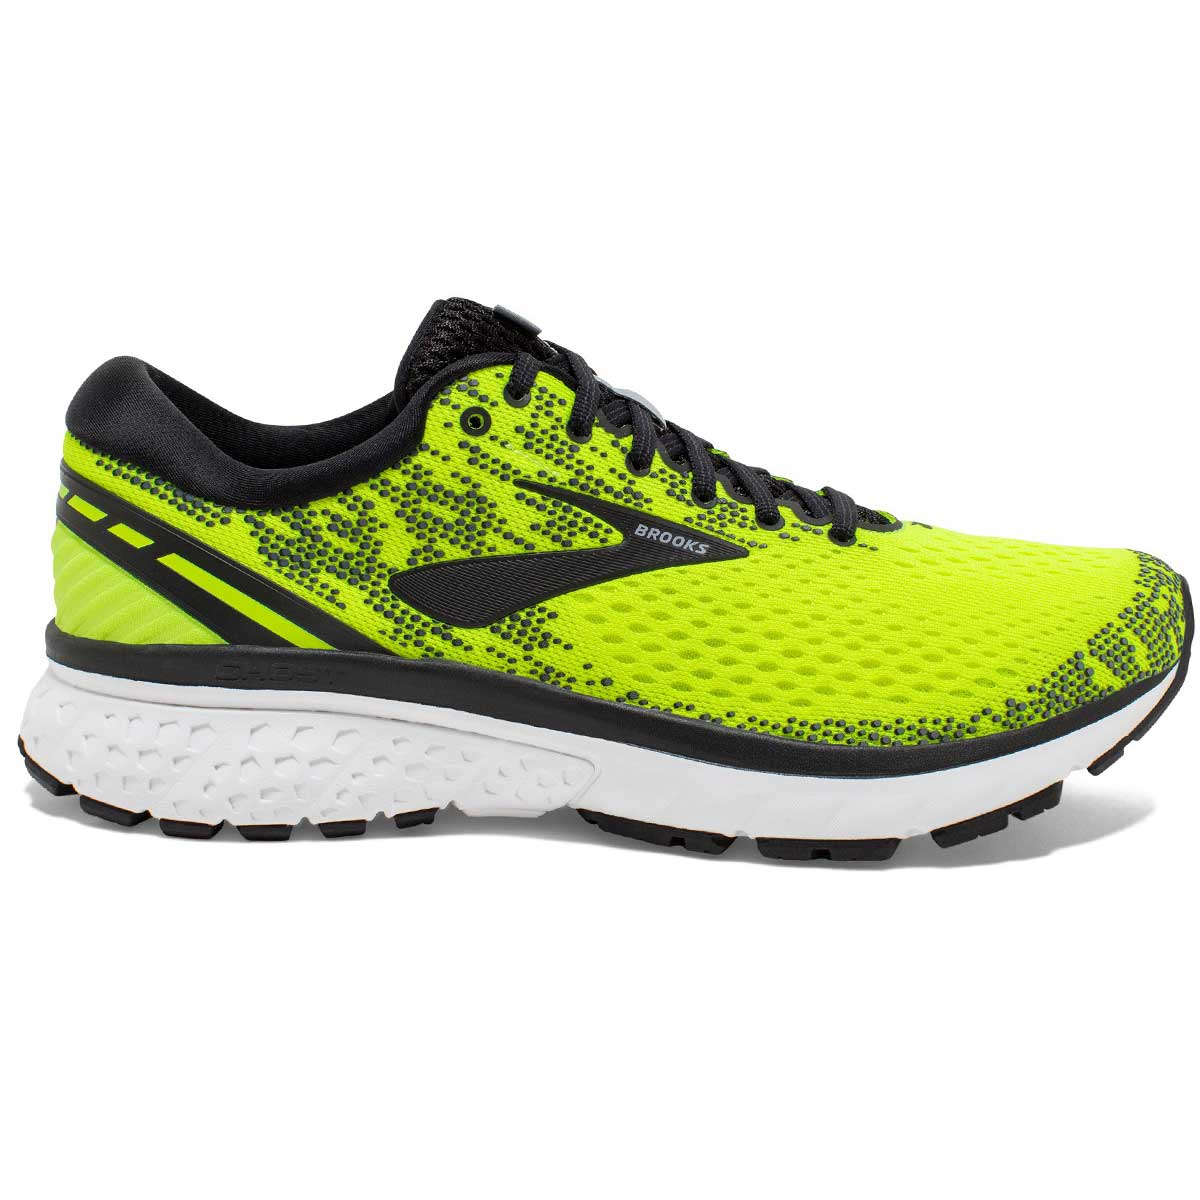 Chaussure de Running Ghost 11 - NightLife Black White